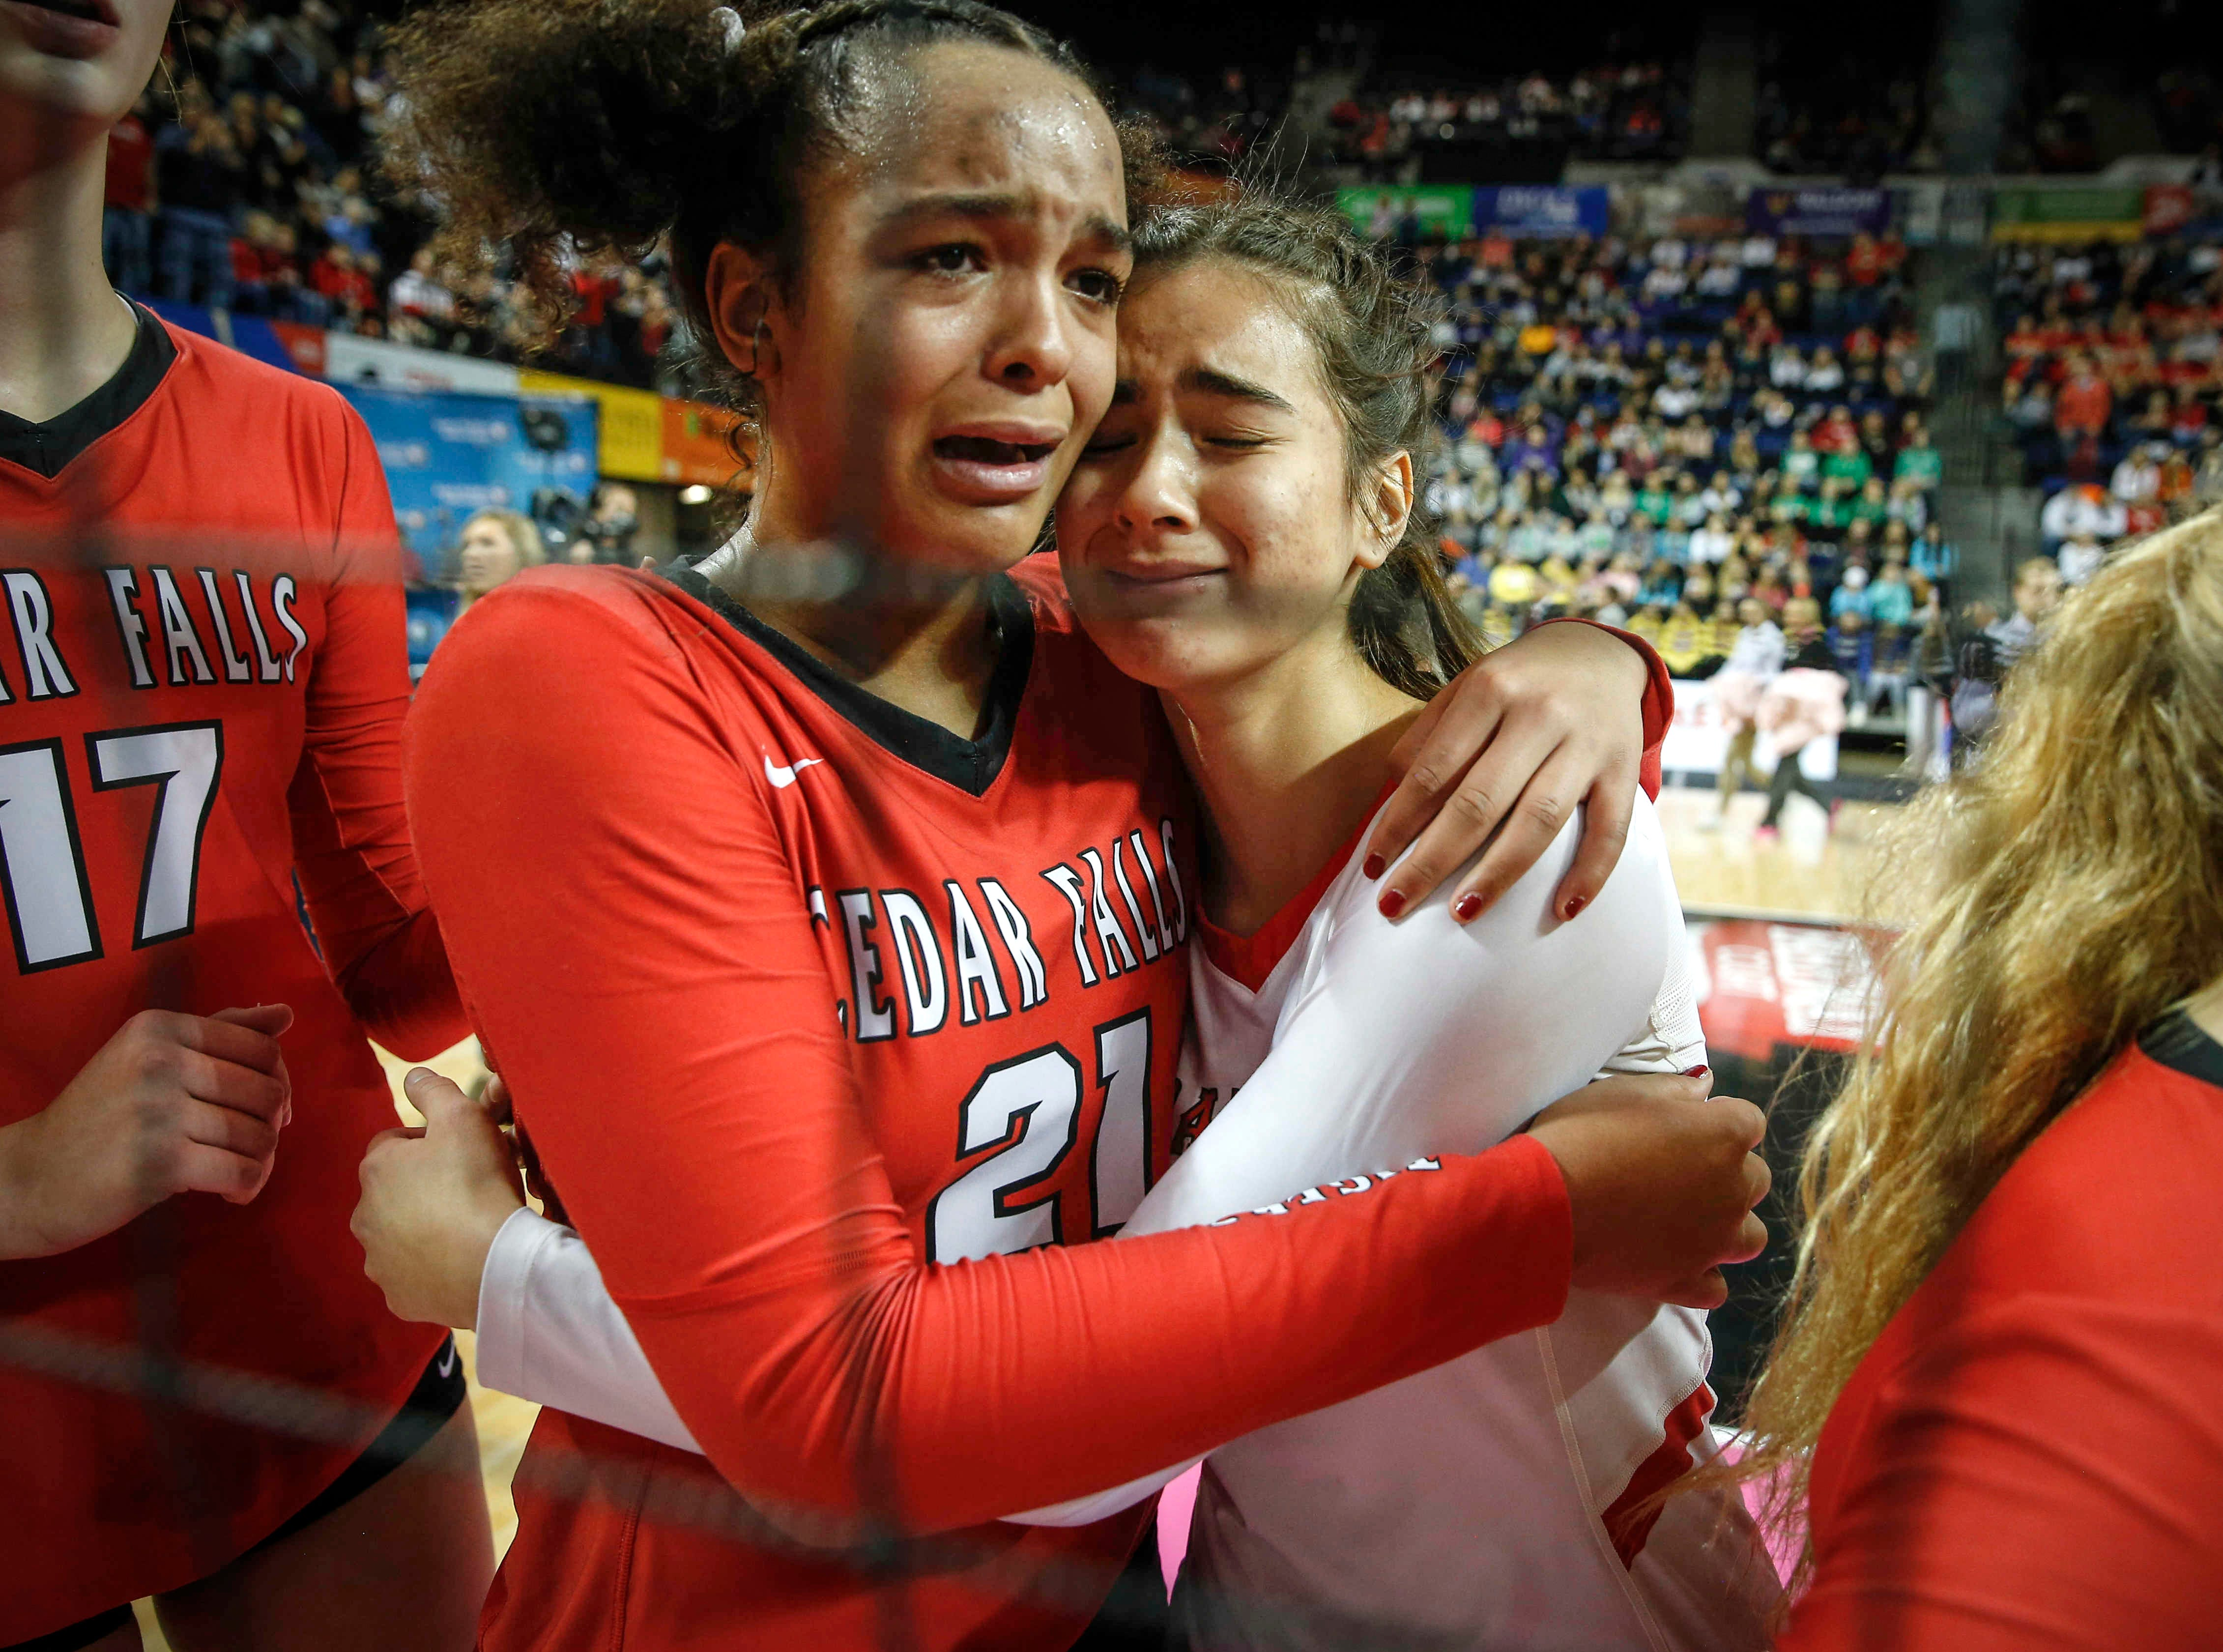 Cedar Falls' Akacia Brown, left, hugs Kirsten Graves after the Tigers lost to Ankeny Centennial during the Class 5A state volleyball tournament championship game on Friday, Nov. 9, 2018, in Cedar Rapids.